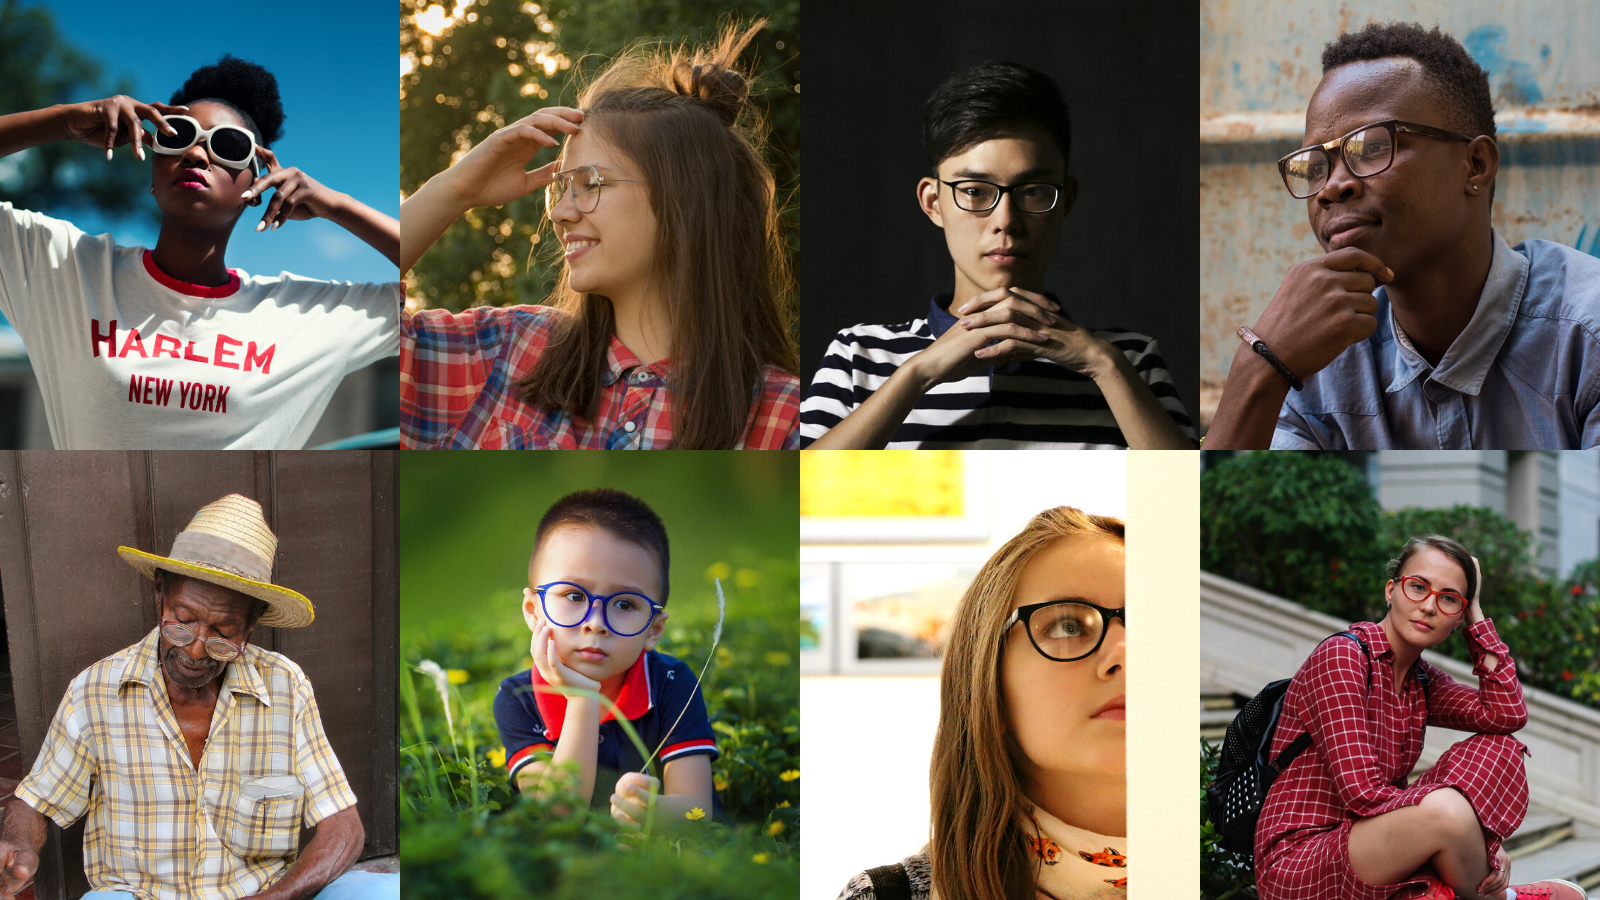 Image: People wearing different kinds of glasses